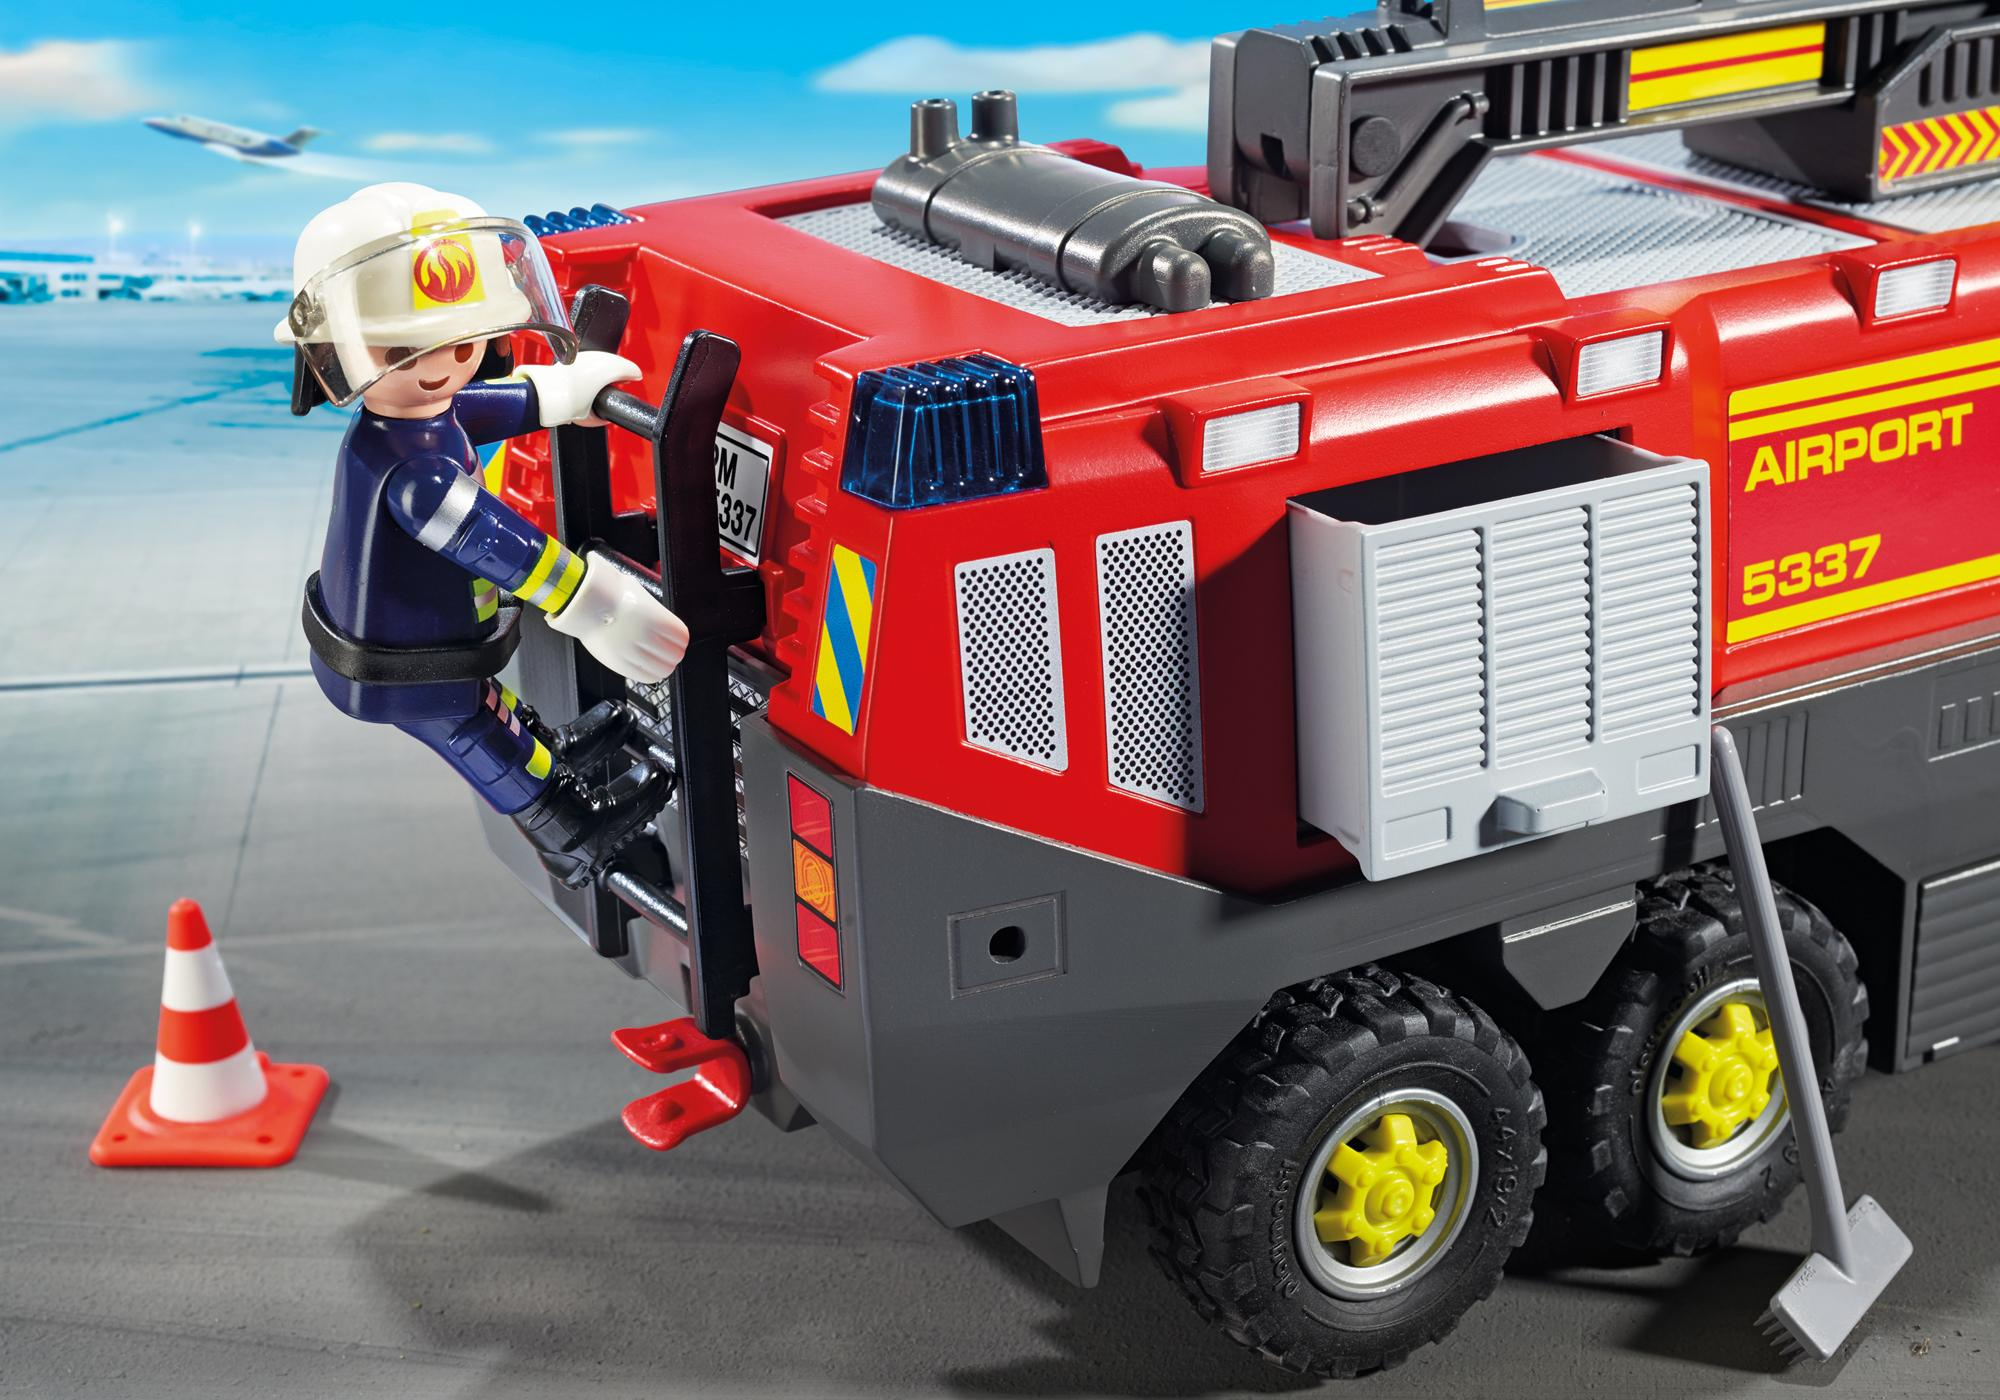 http://media.playmobil.com/i/playmobil/5337_product_extra2/Airport Fire Engine with Lights and Sound